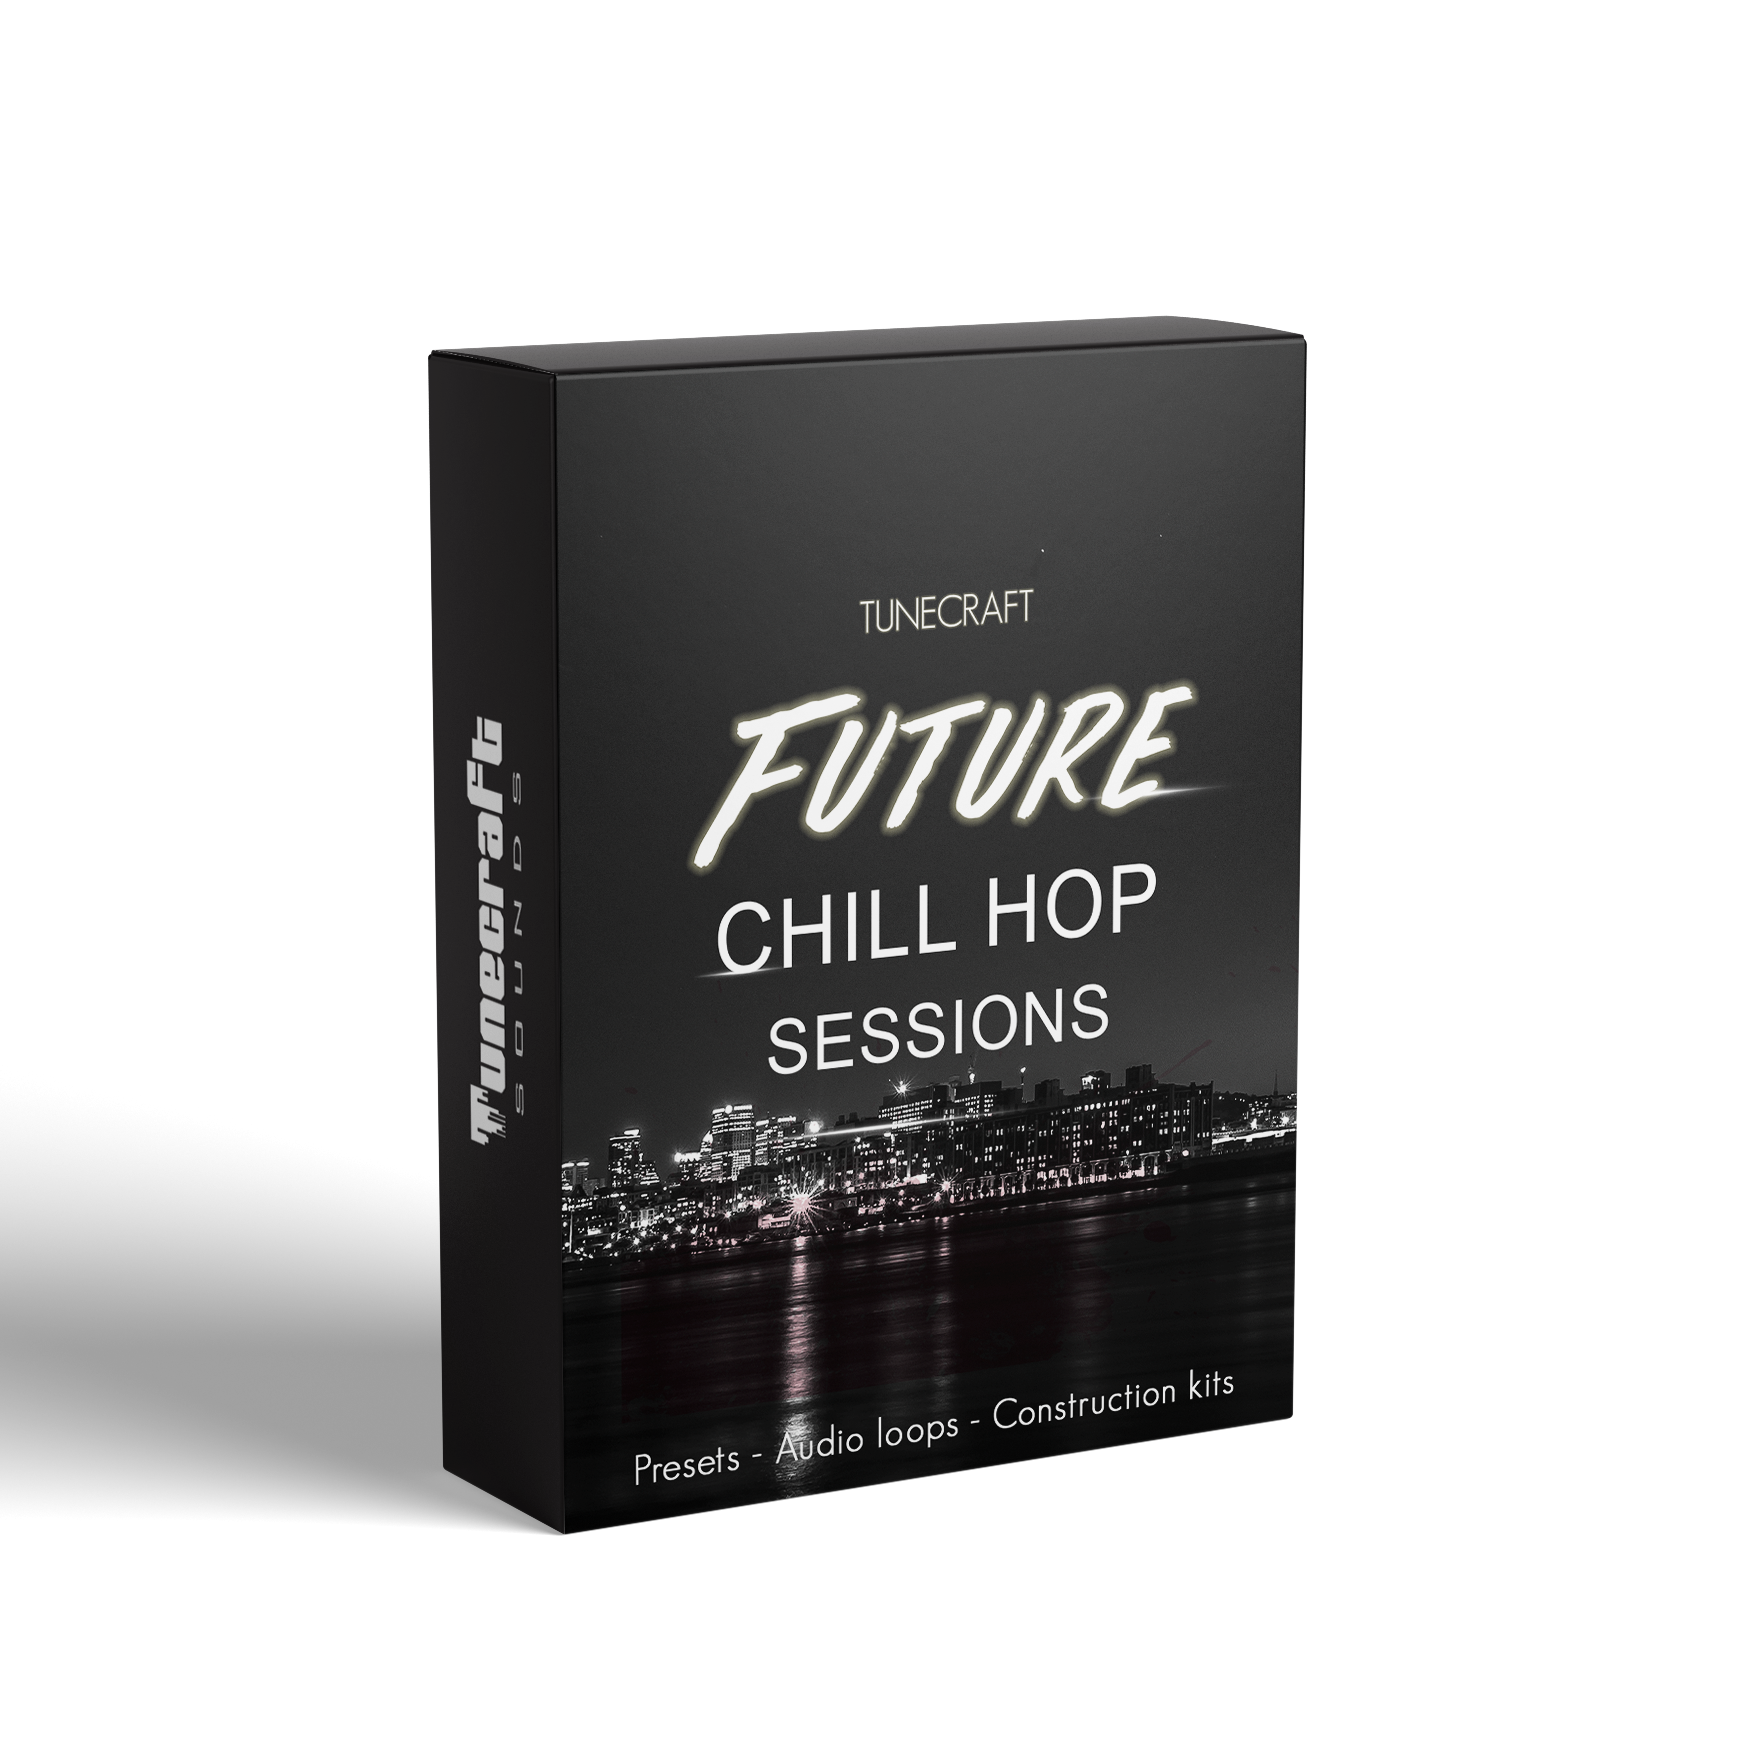 Future-Chill-Hop-v1-3D-box-trans